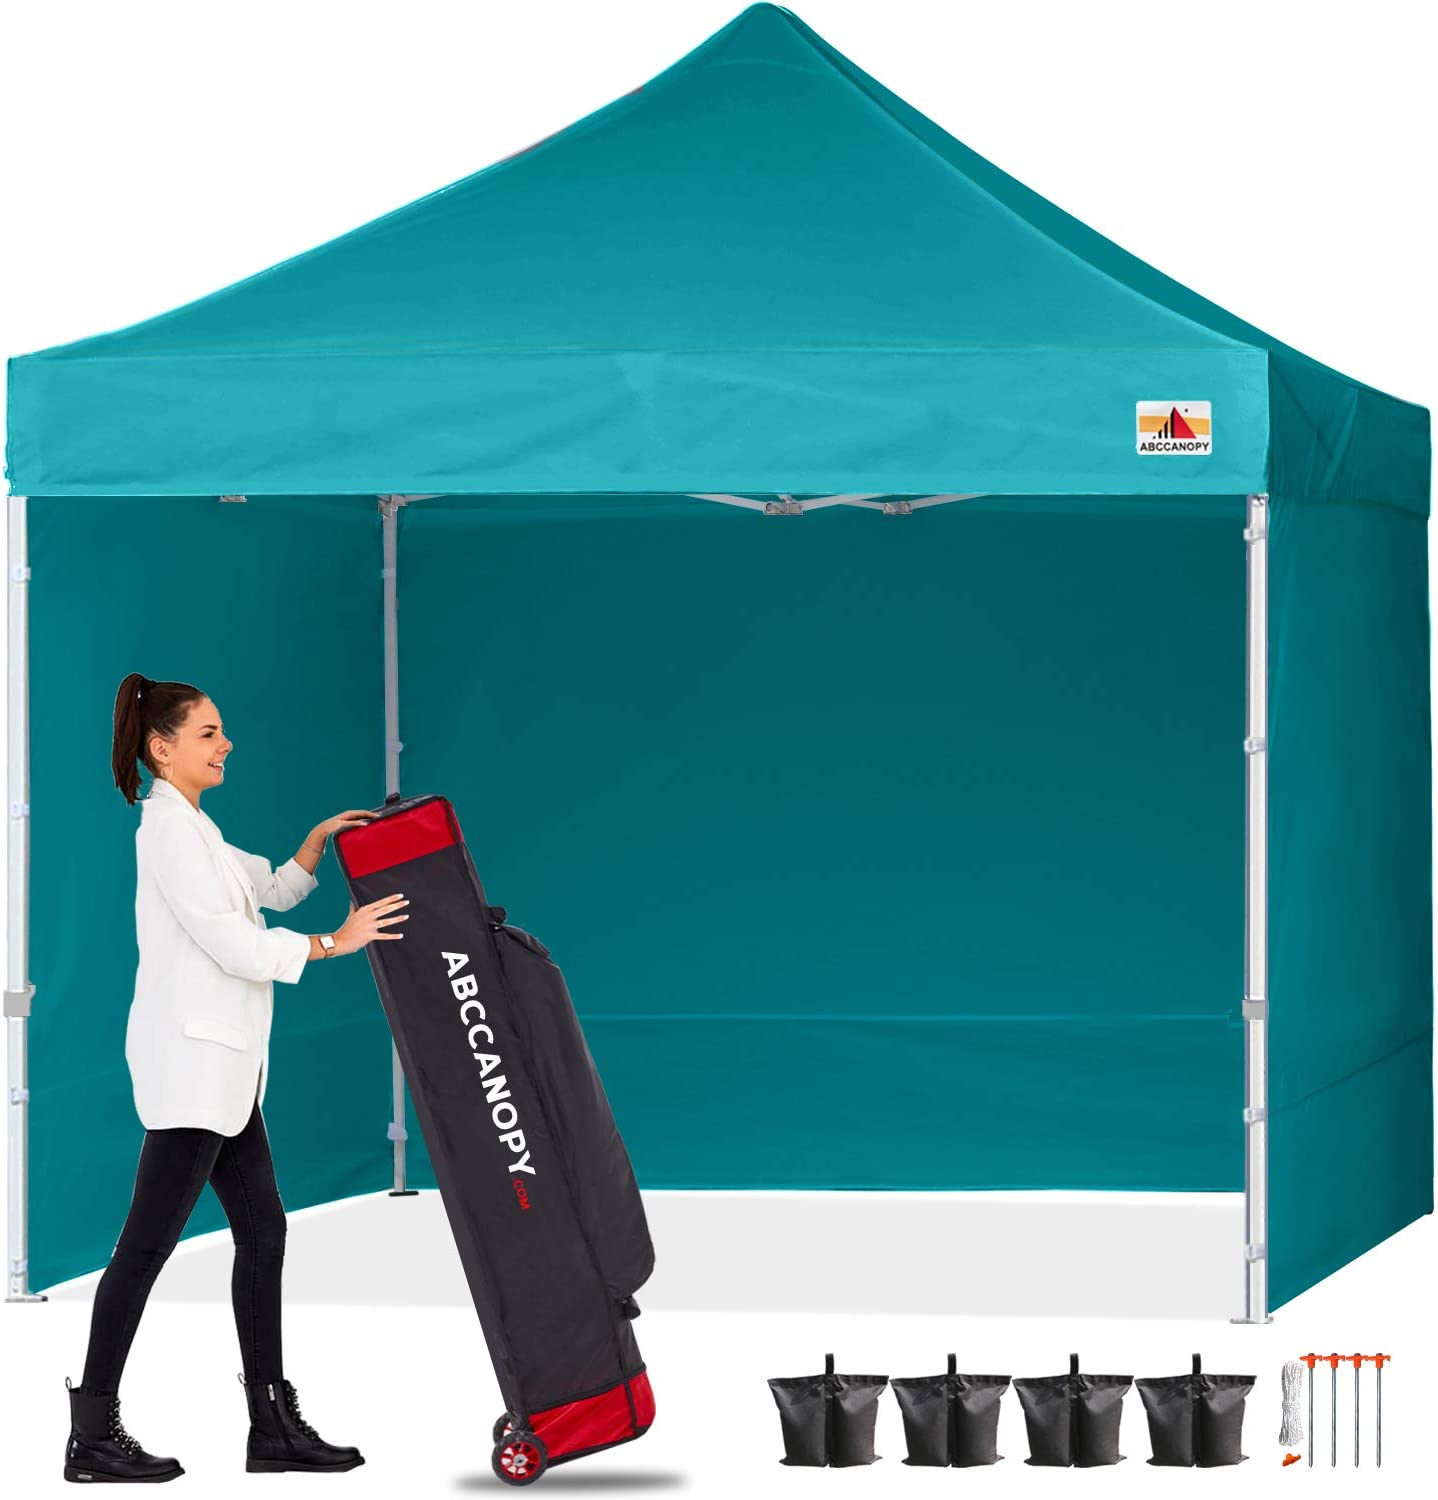 ABCCANOPY Canopy Pop Up Commercial Canopy Tent with Side Walls Instant Shade, Bonus Upgrade Roller Bag, 4 Weight Bags, Stakes and Ropes, Turquoise